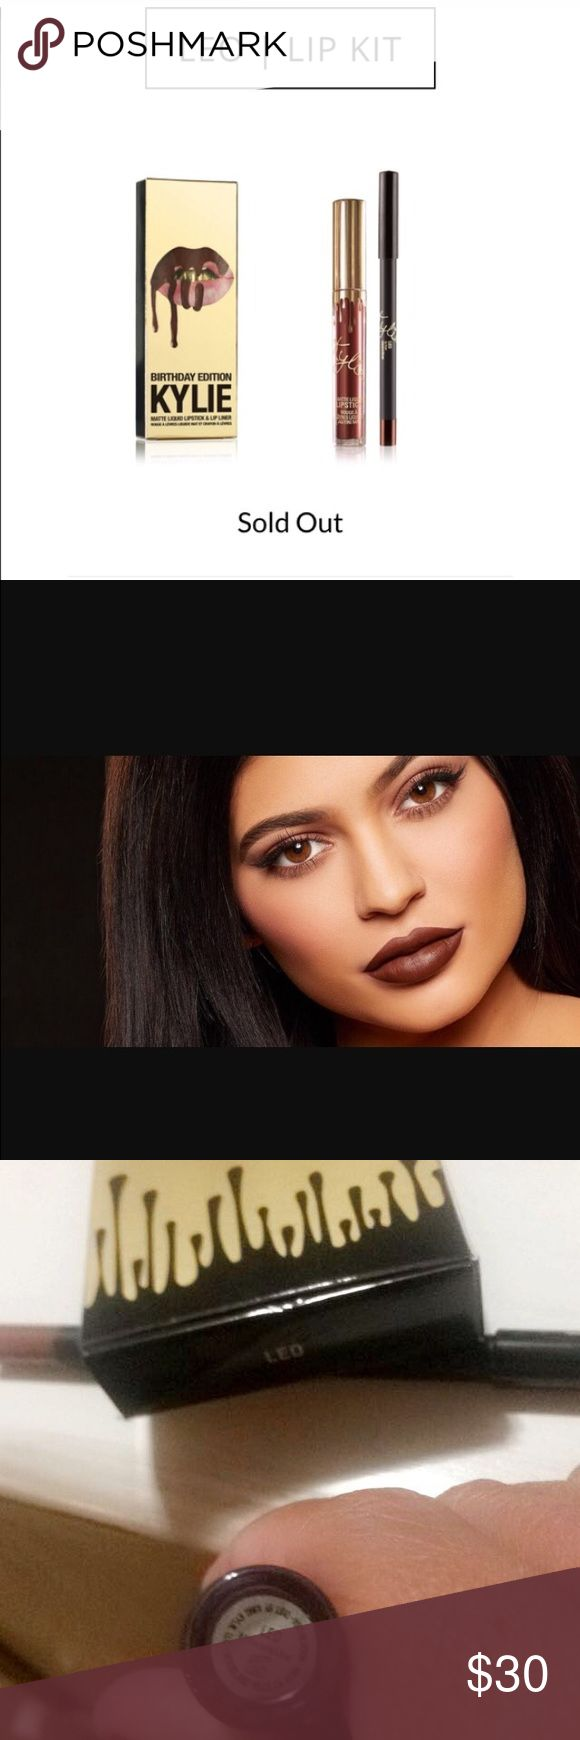 Kylie Jenner SOLD OUT Lip Kit LEO❤️ ✨Kylie Jenner Birthday Edition(Golden) in Beautiful LEO❤️ Purchase contains: 1pencil lip liner&matte liquid lipstick Brand new Popular  Sold Out! 100% authentic Due to sanitary reasons I cannot take makeup back on this particular product Kylie Cosmetics Makeup Lip Liner